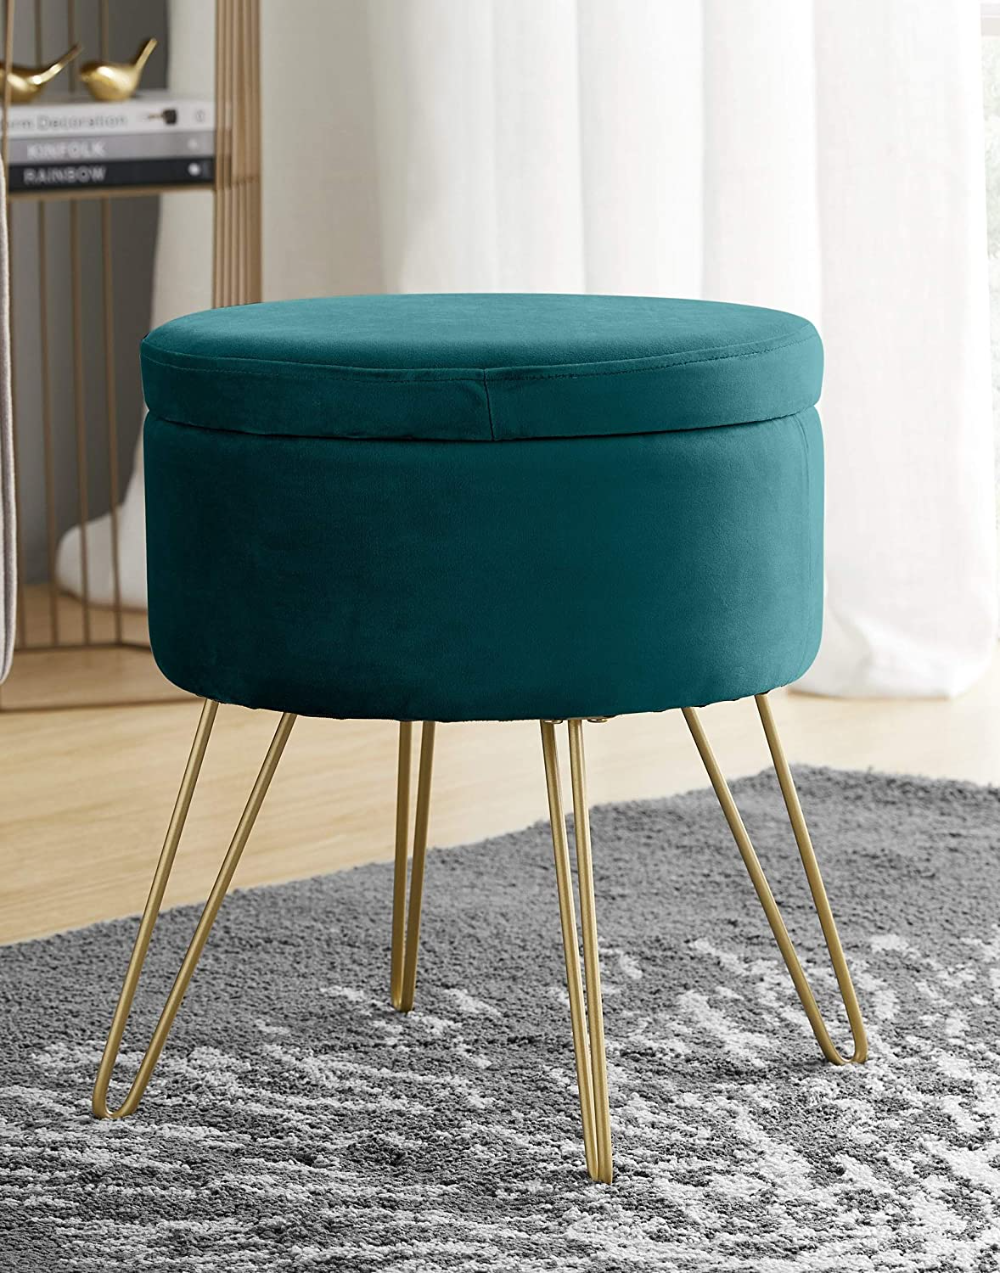 Amazonsmile Ornavo Home Modern Round Velvet Storage Ottoman Foot Rest Stool Seat With Gold Metal Legs Tray Top Coffee Storage Ottoman Modern Round Foot Rest [ 1273 x 1000 Pixel ]